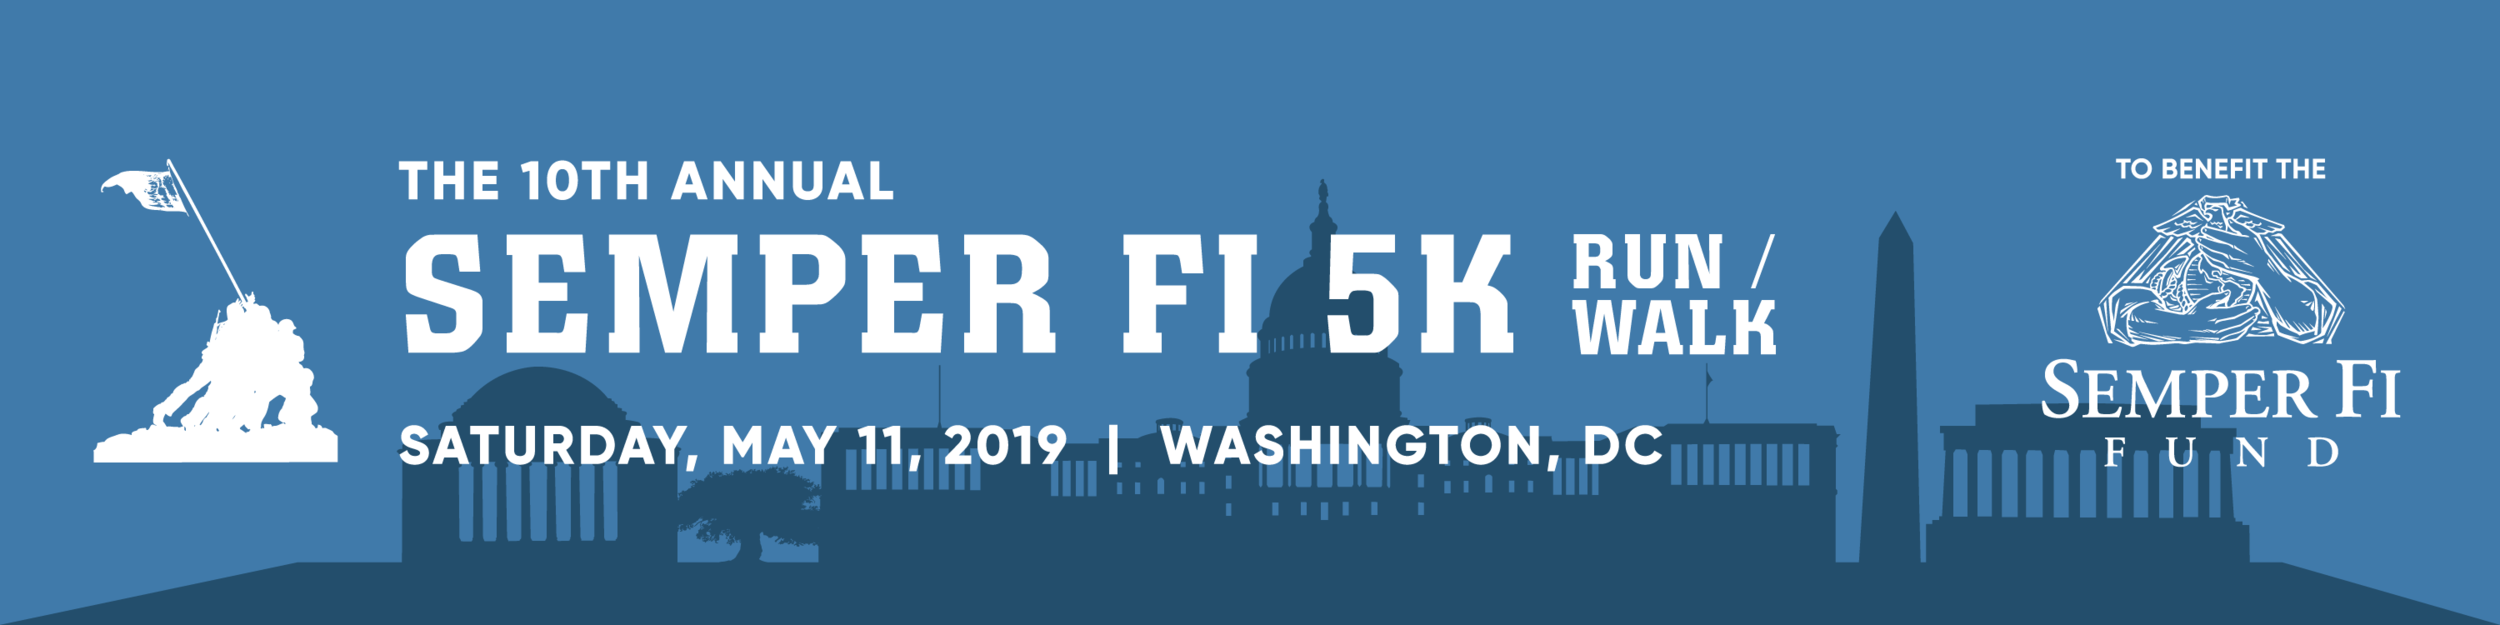 2019_sf5k_banner.png